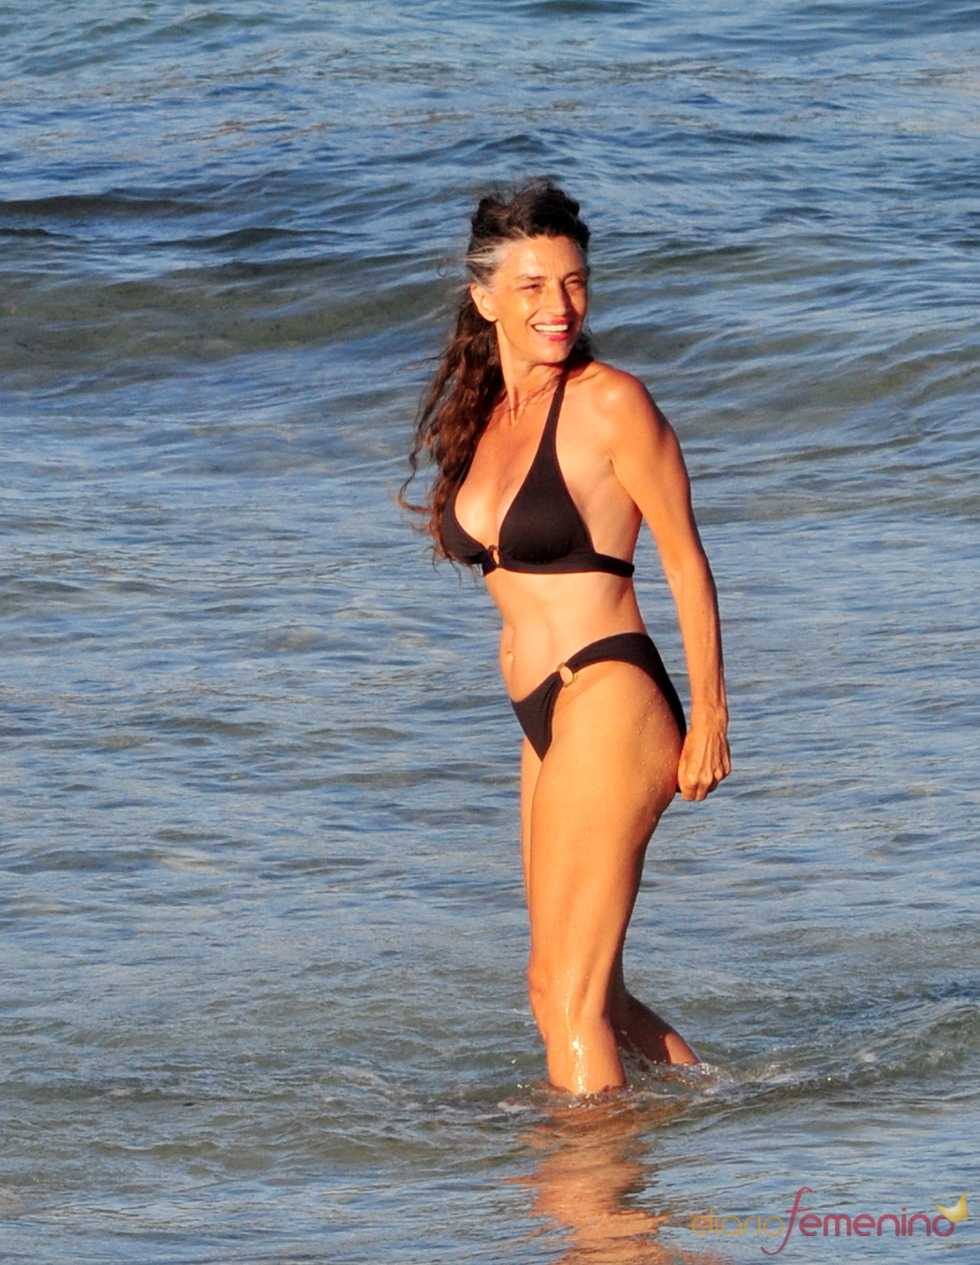 Angela Molina Bikini classify central spanish actress Ángela molina tejedor